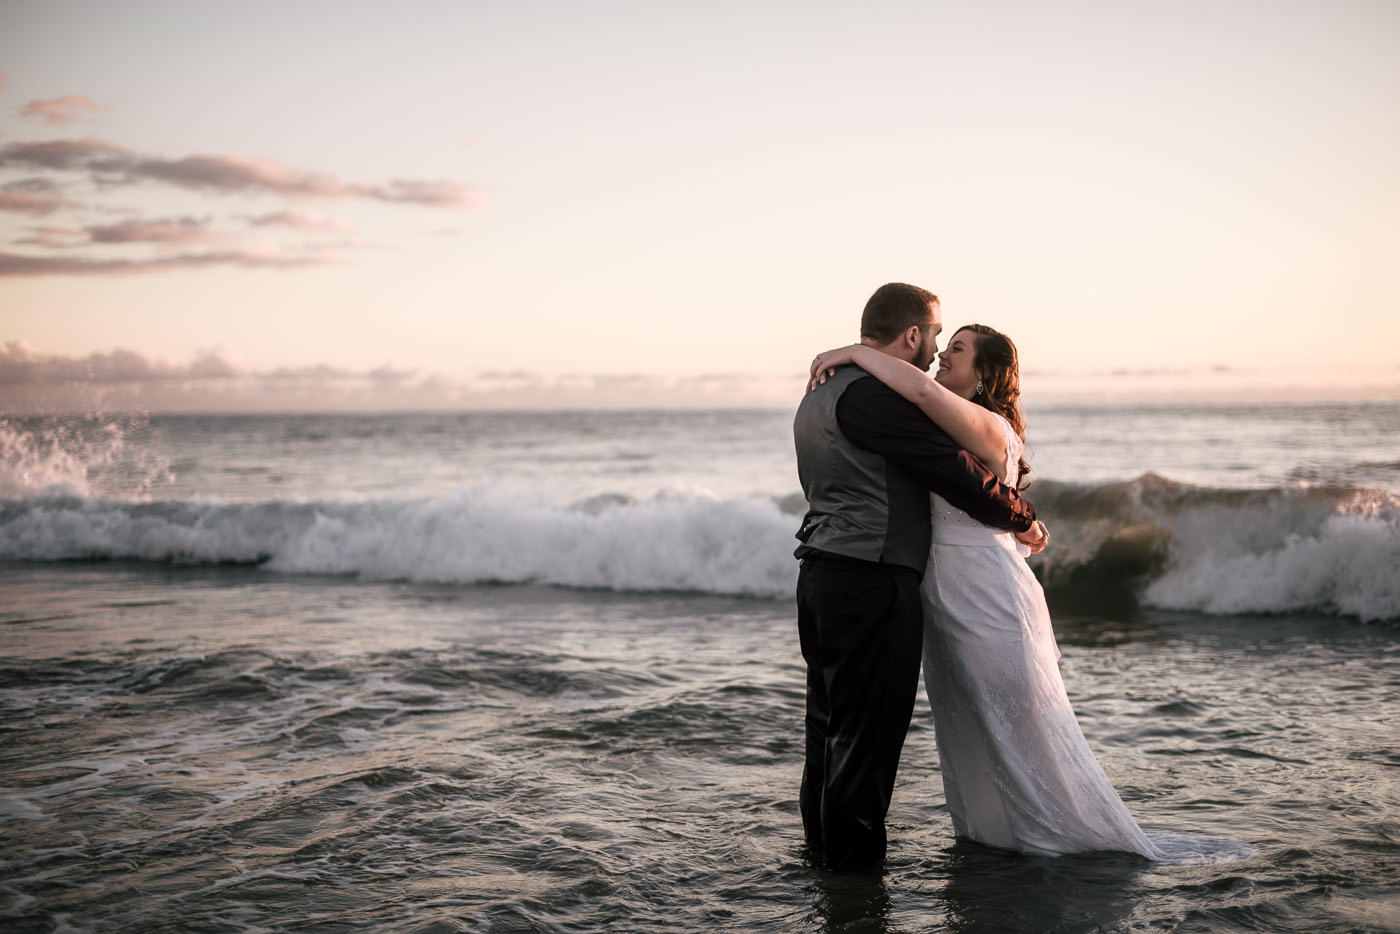 Couple stands in the ocean as waves crash around them at sunset after their wedding at Laguna Beach.